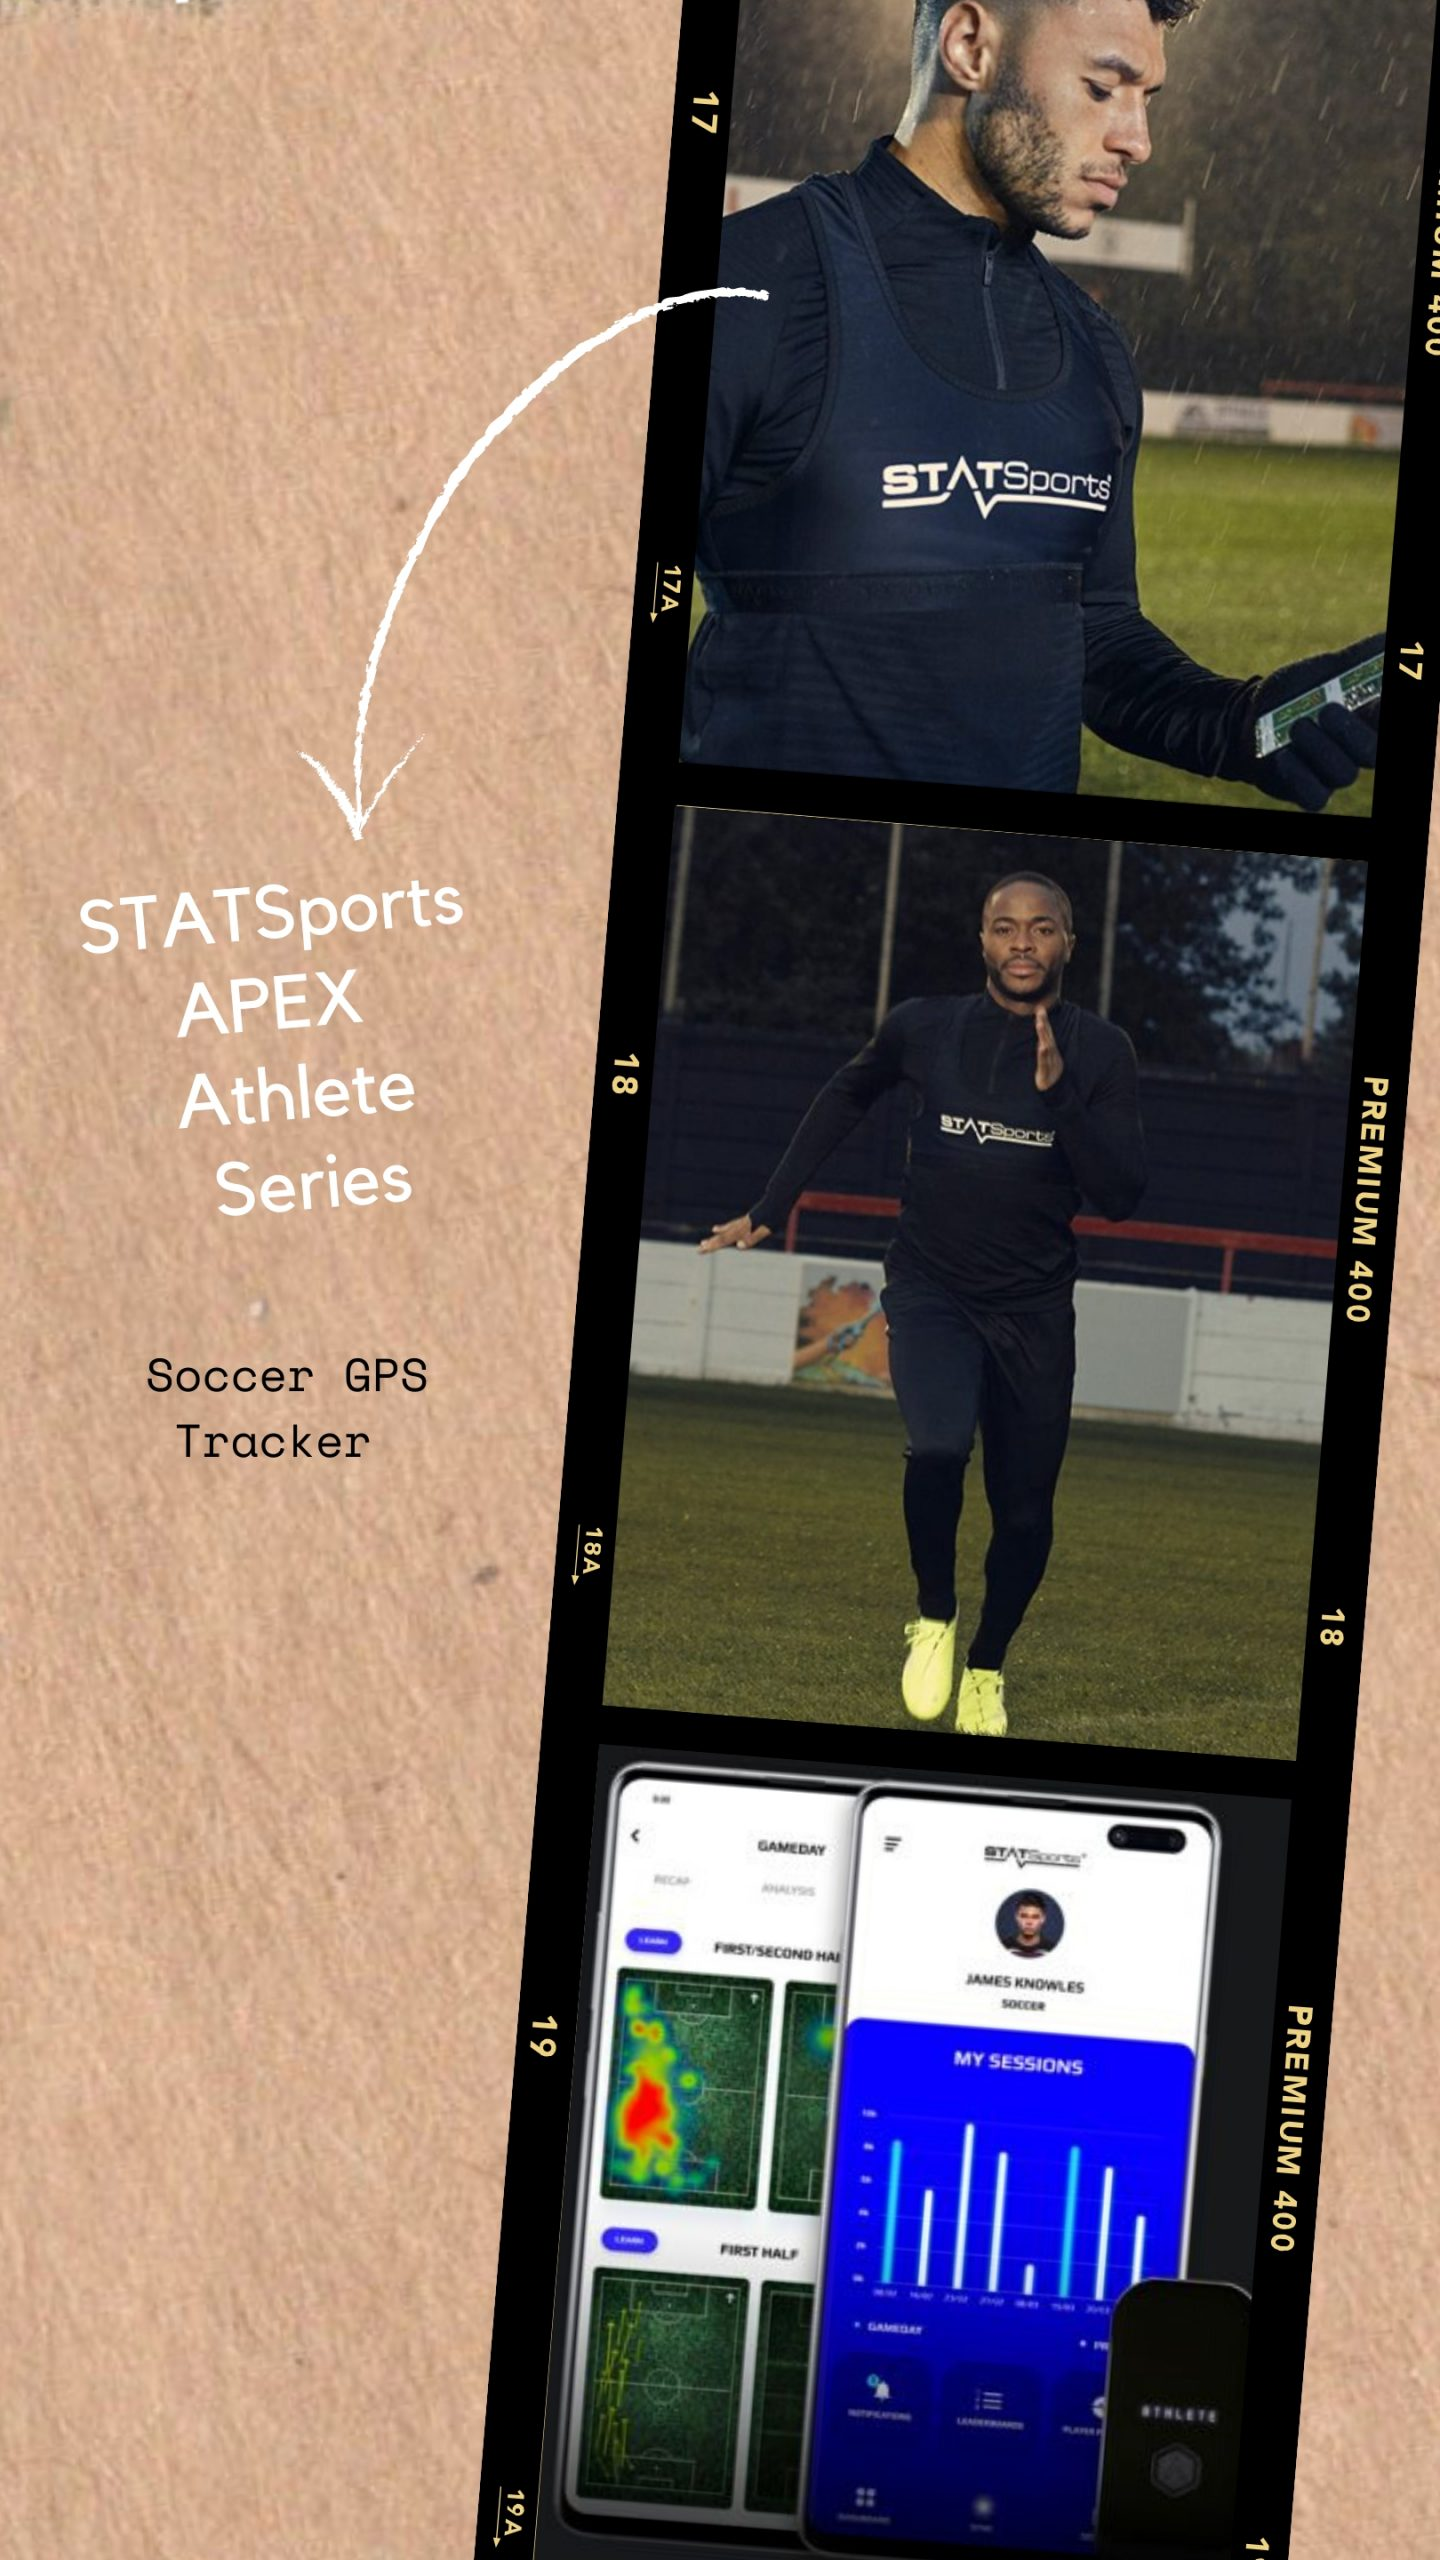 STATSports APEX Athlete Series Soccer GPS Tracker